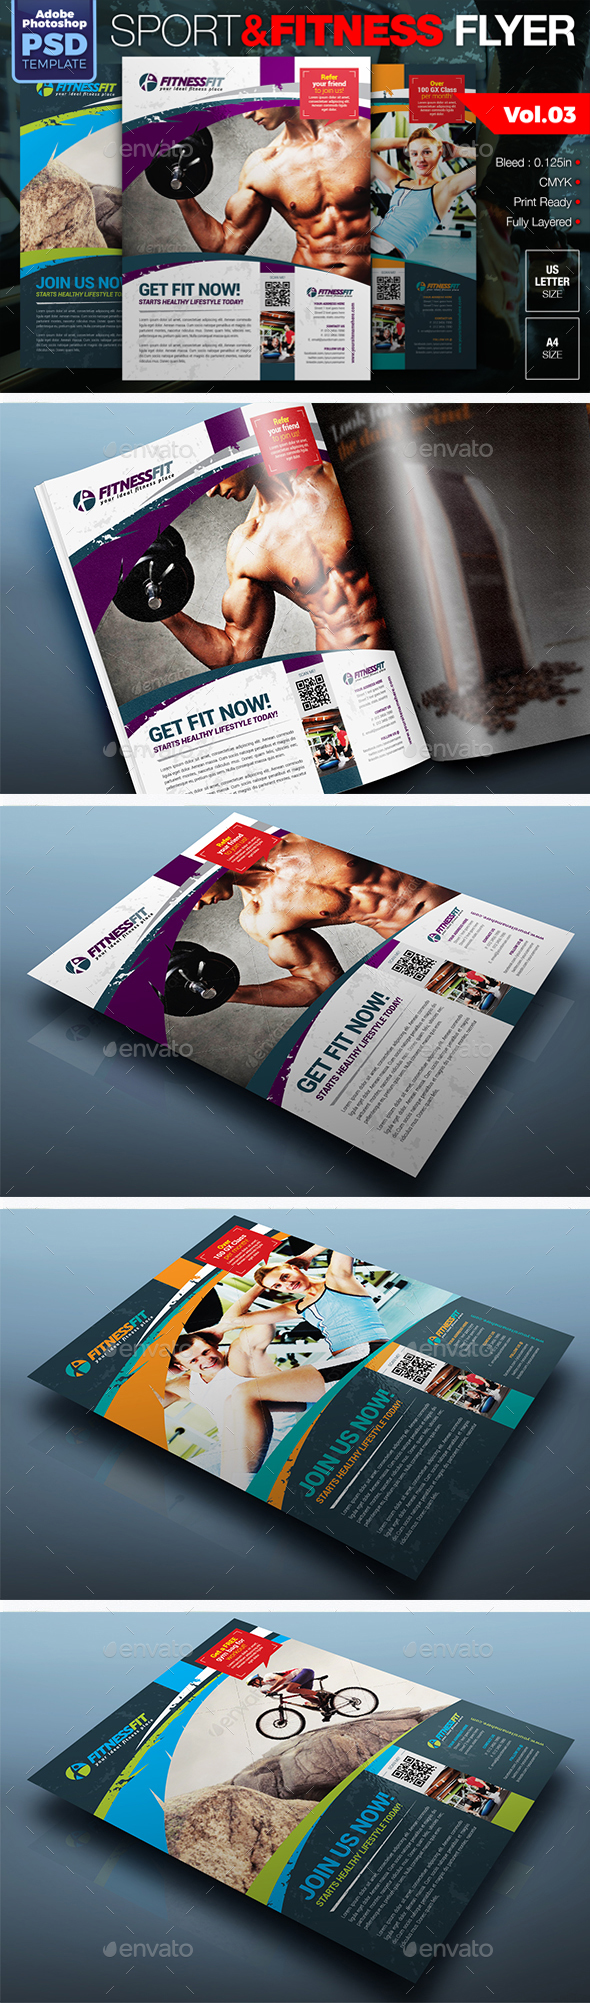 Sport & Fitness Flyer Vol.03